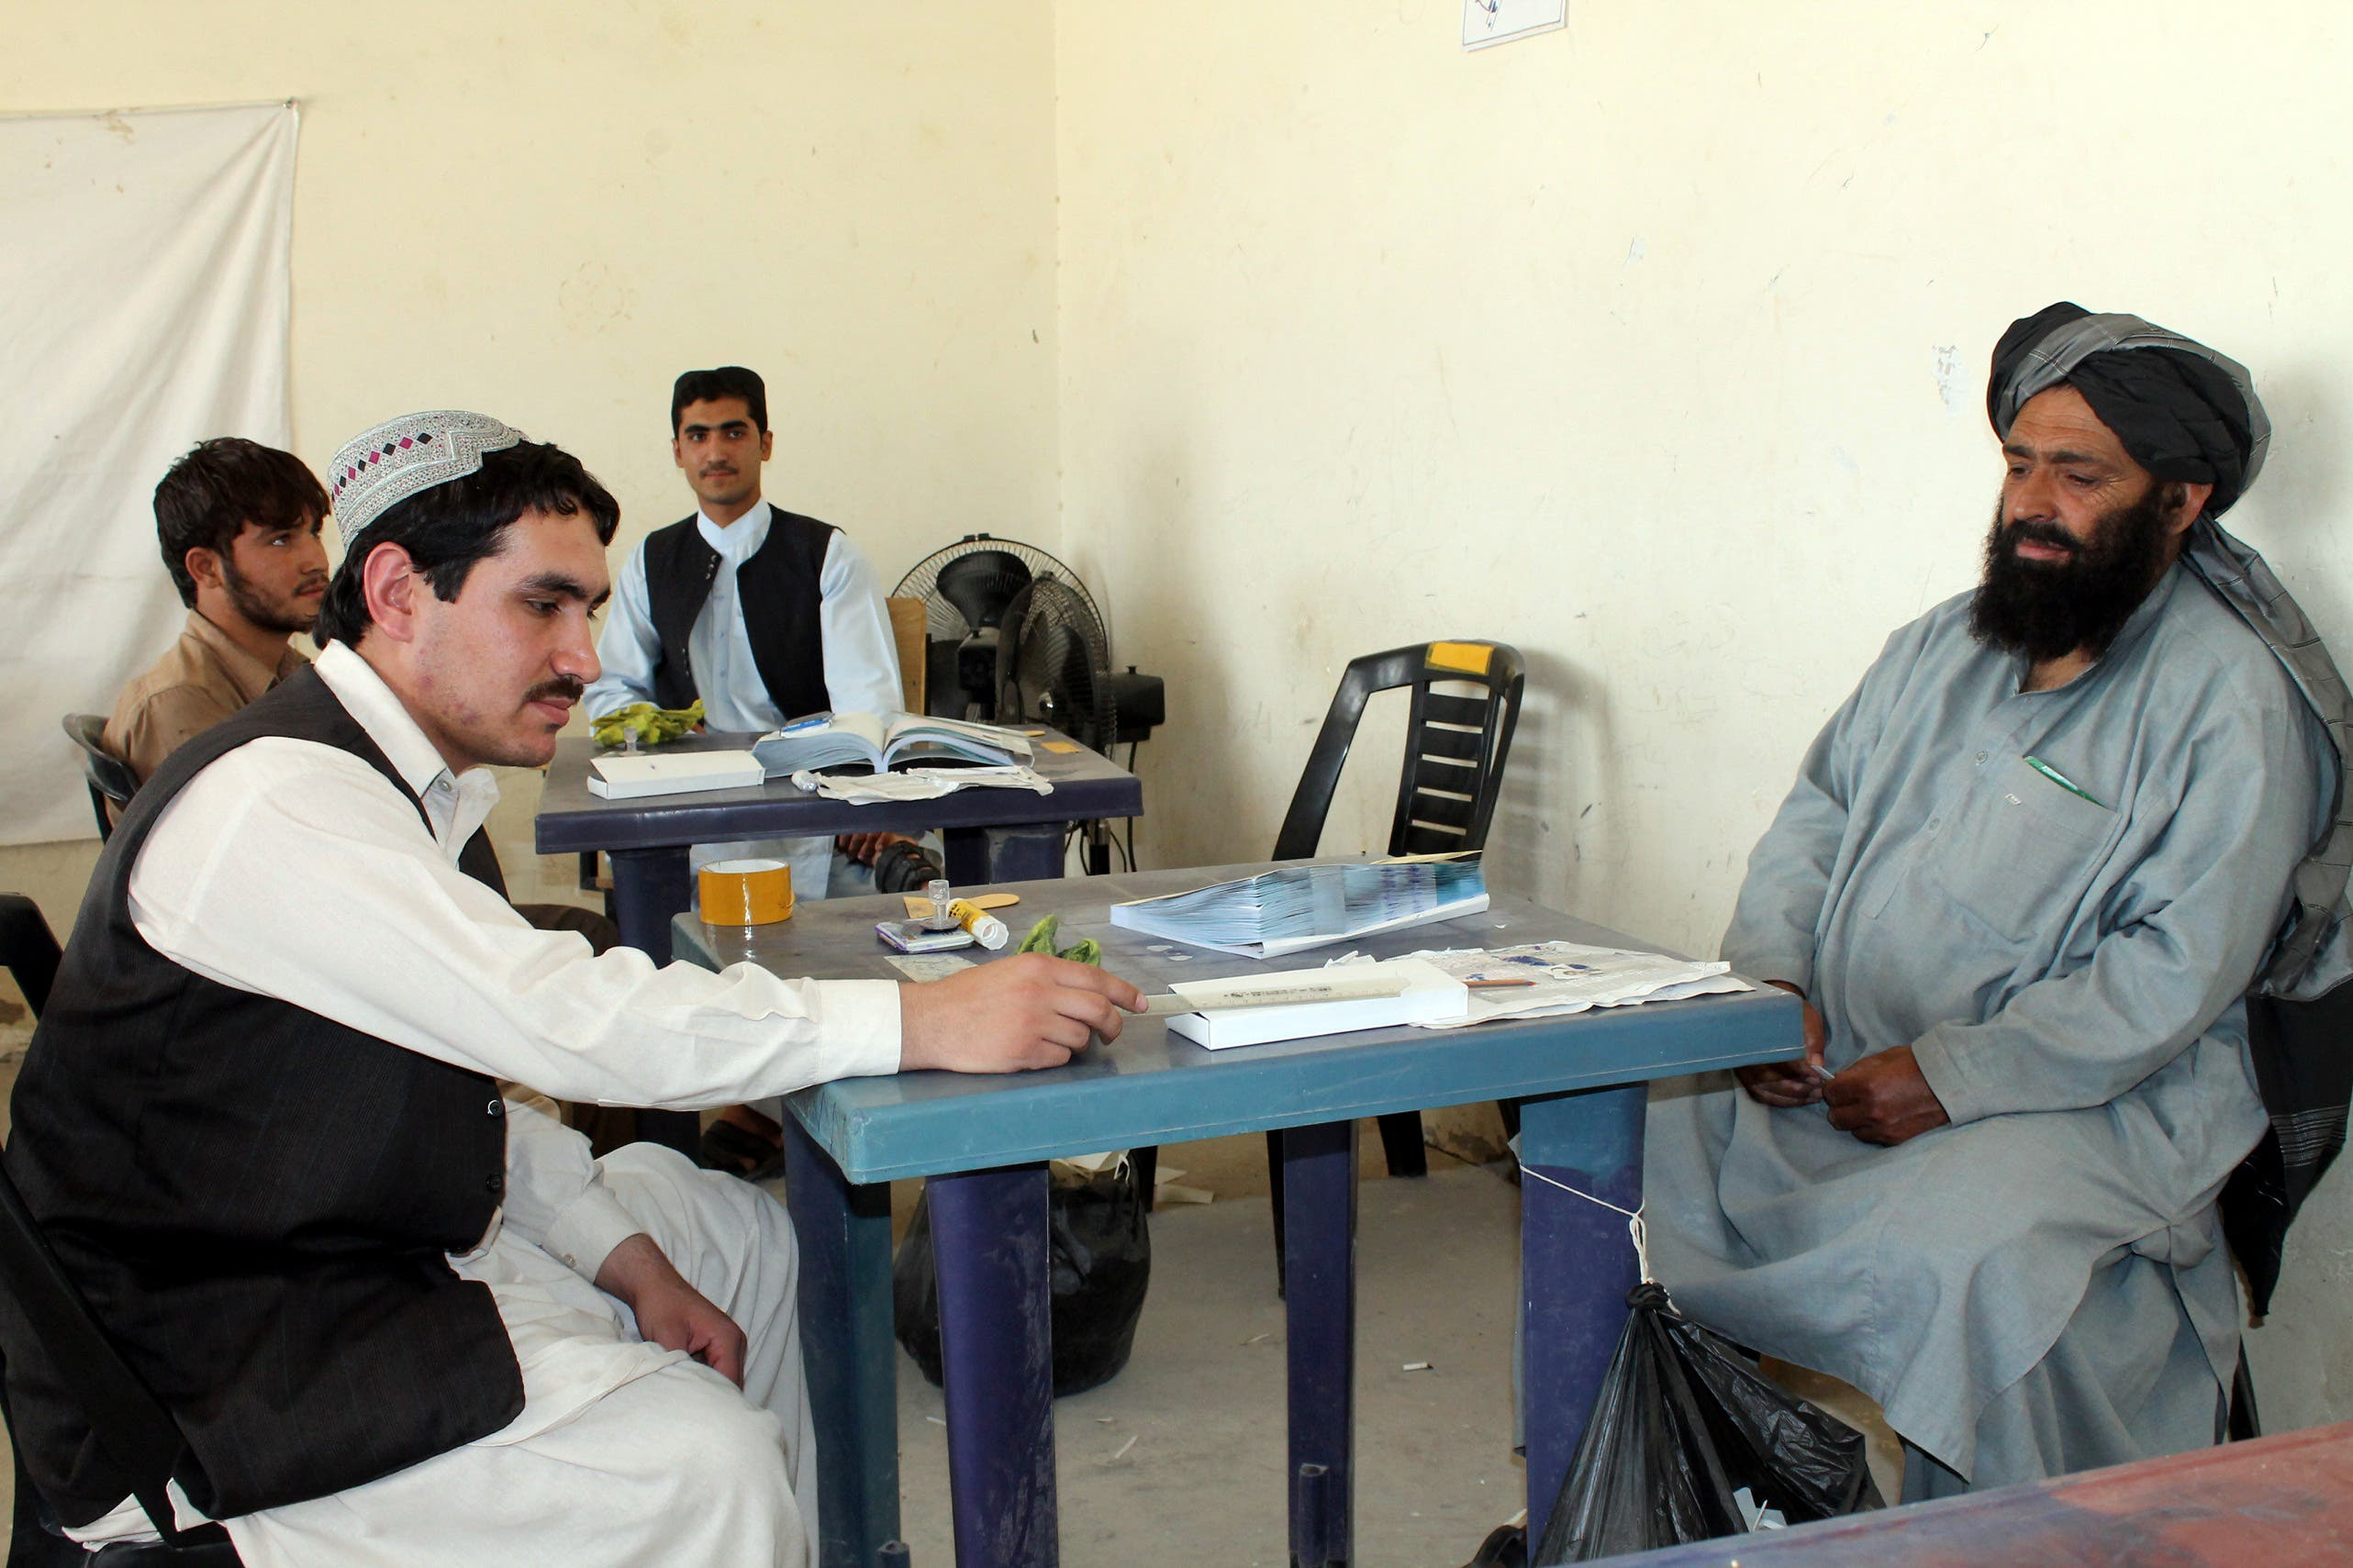 An Afghan man (R) waits to receive his identification card to vote in upcoming elections at a registration center in Kandahar on Sept. 28, 2013. (AFP)